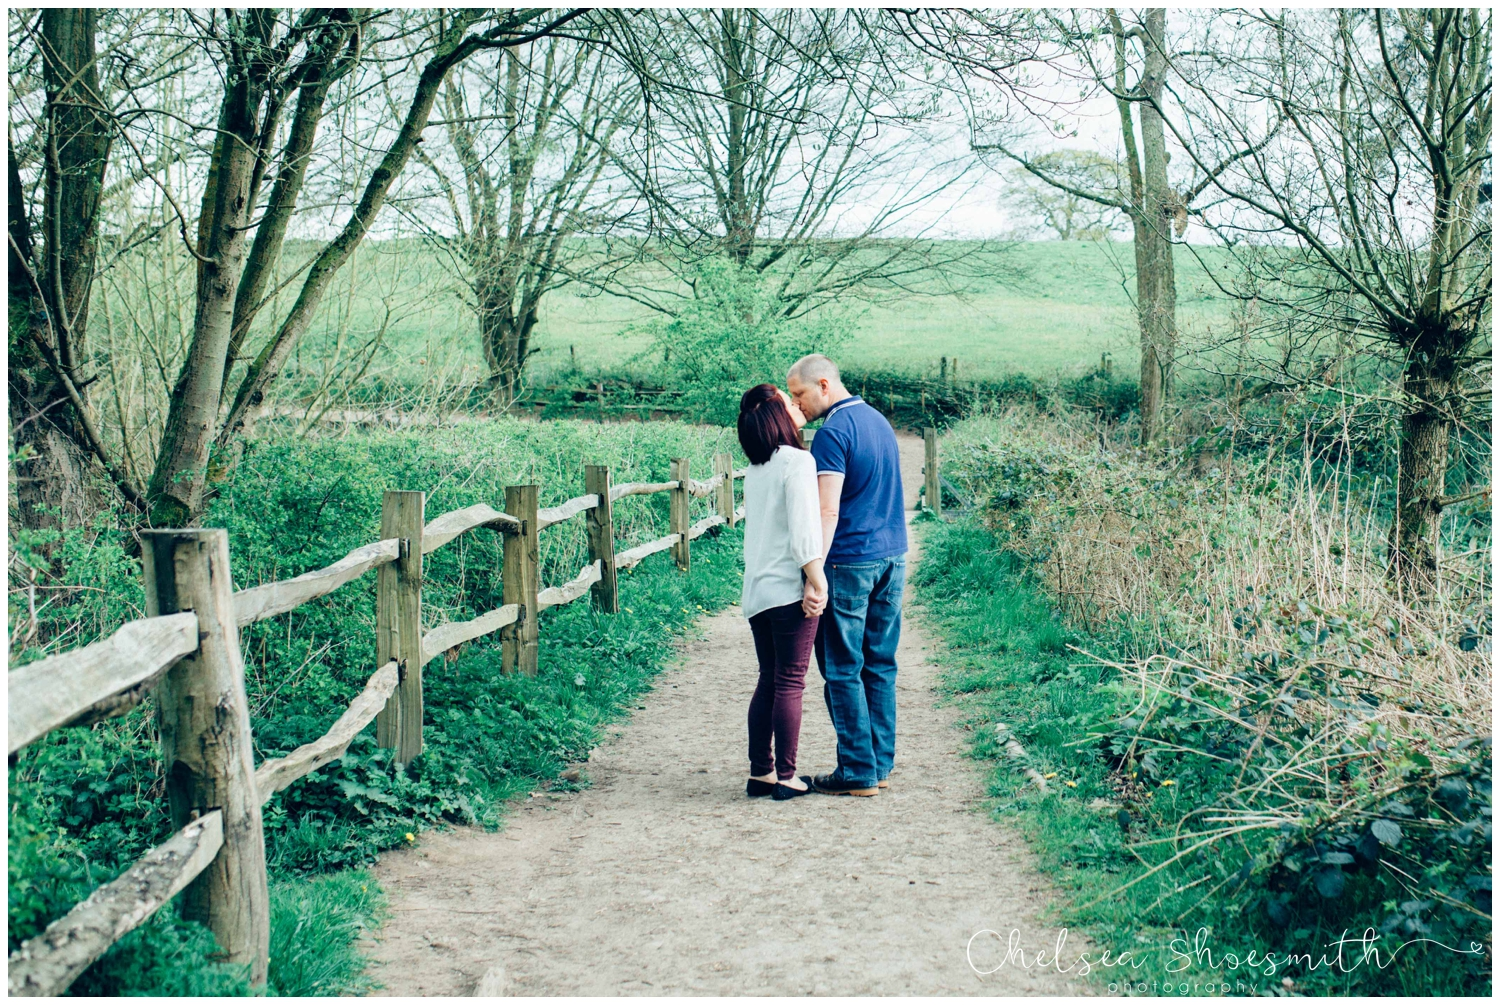 (40 of 72) Rigby Family Portrait Photography Quarry Bank Mill Styal Chelsea Shoesmith photography